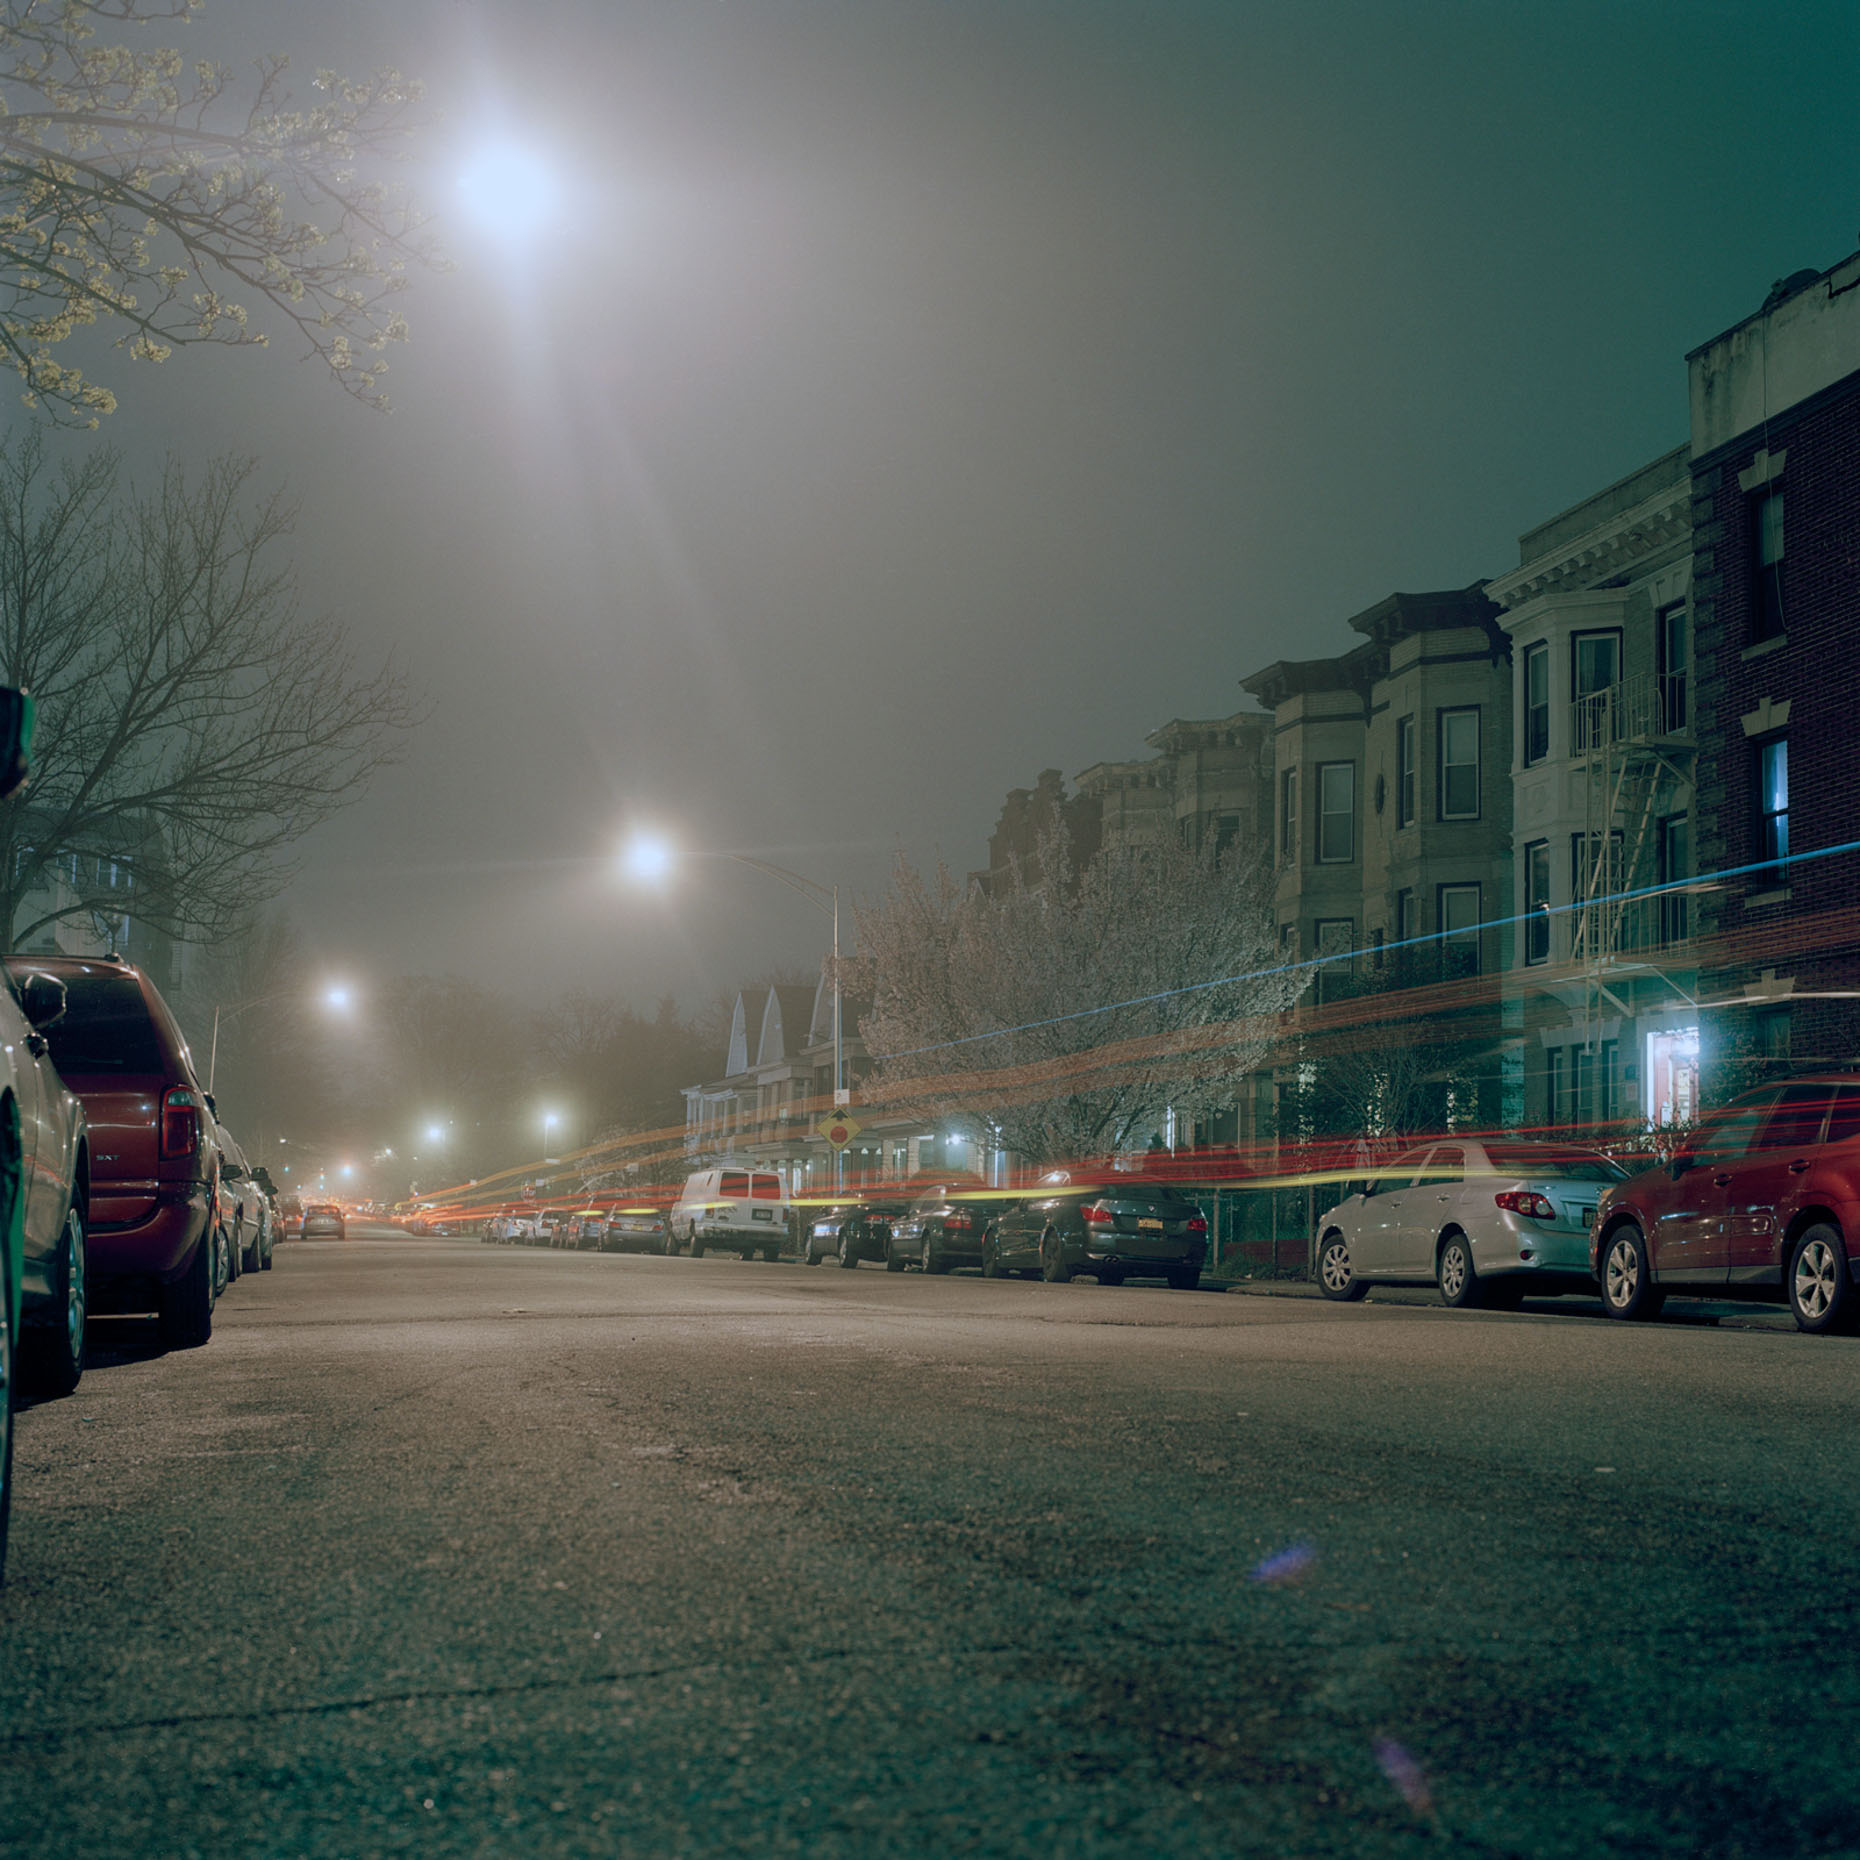 A quiet street in Ditmas Park, Brooklyn sits enveloped in mist during the late night hours.